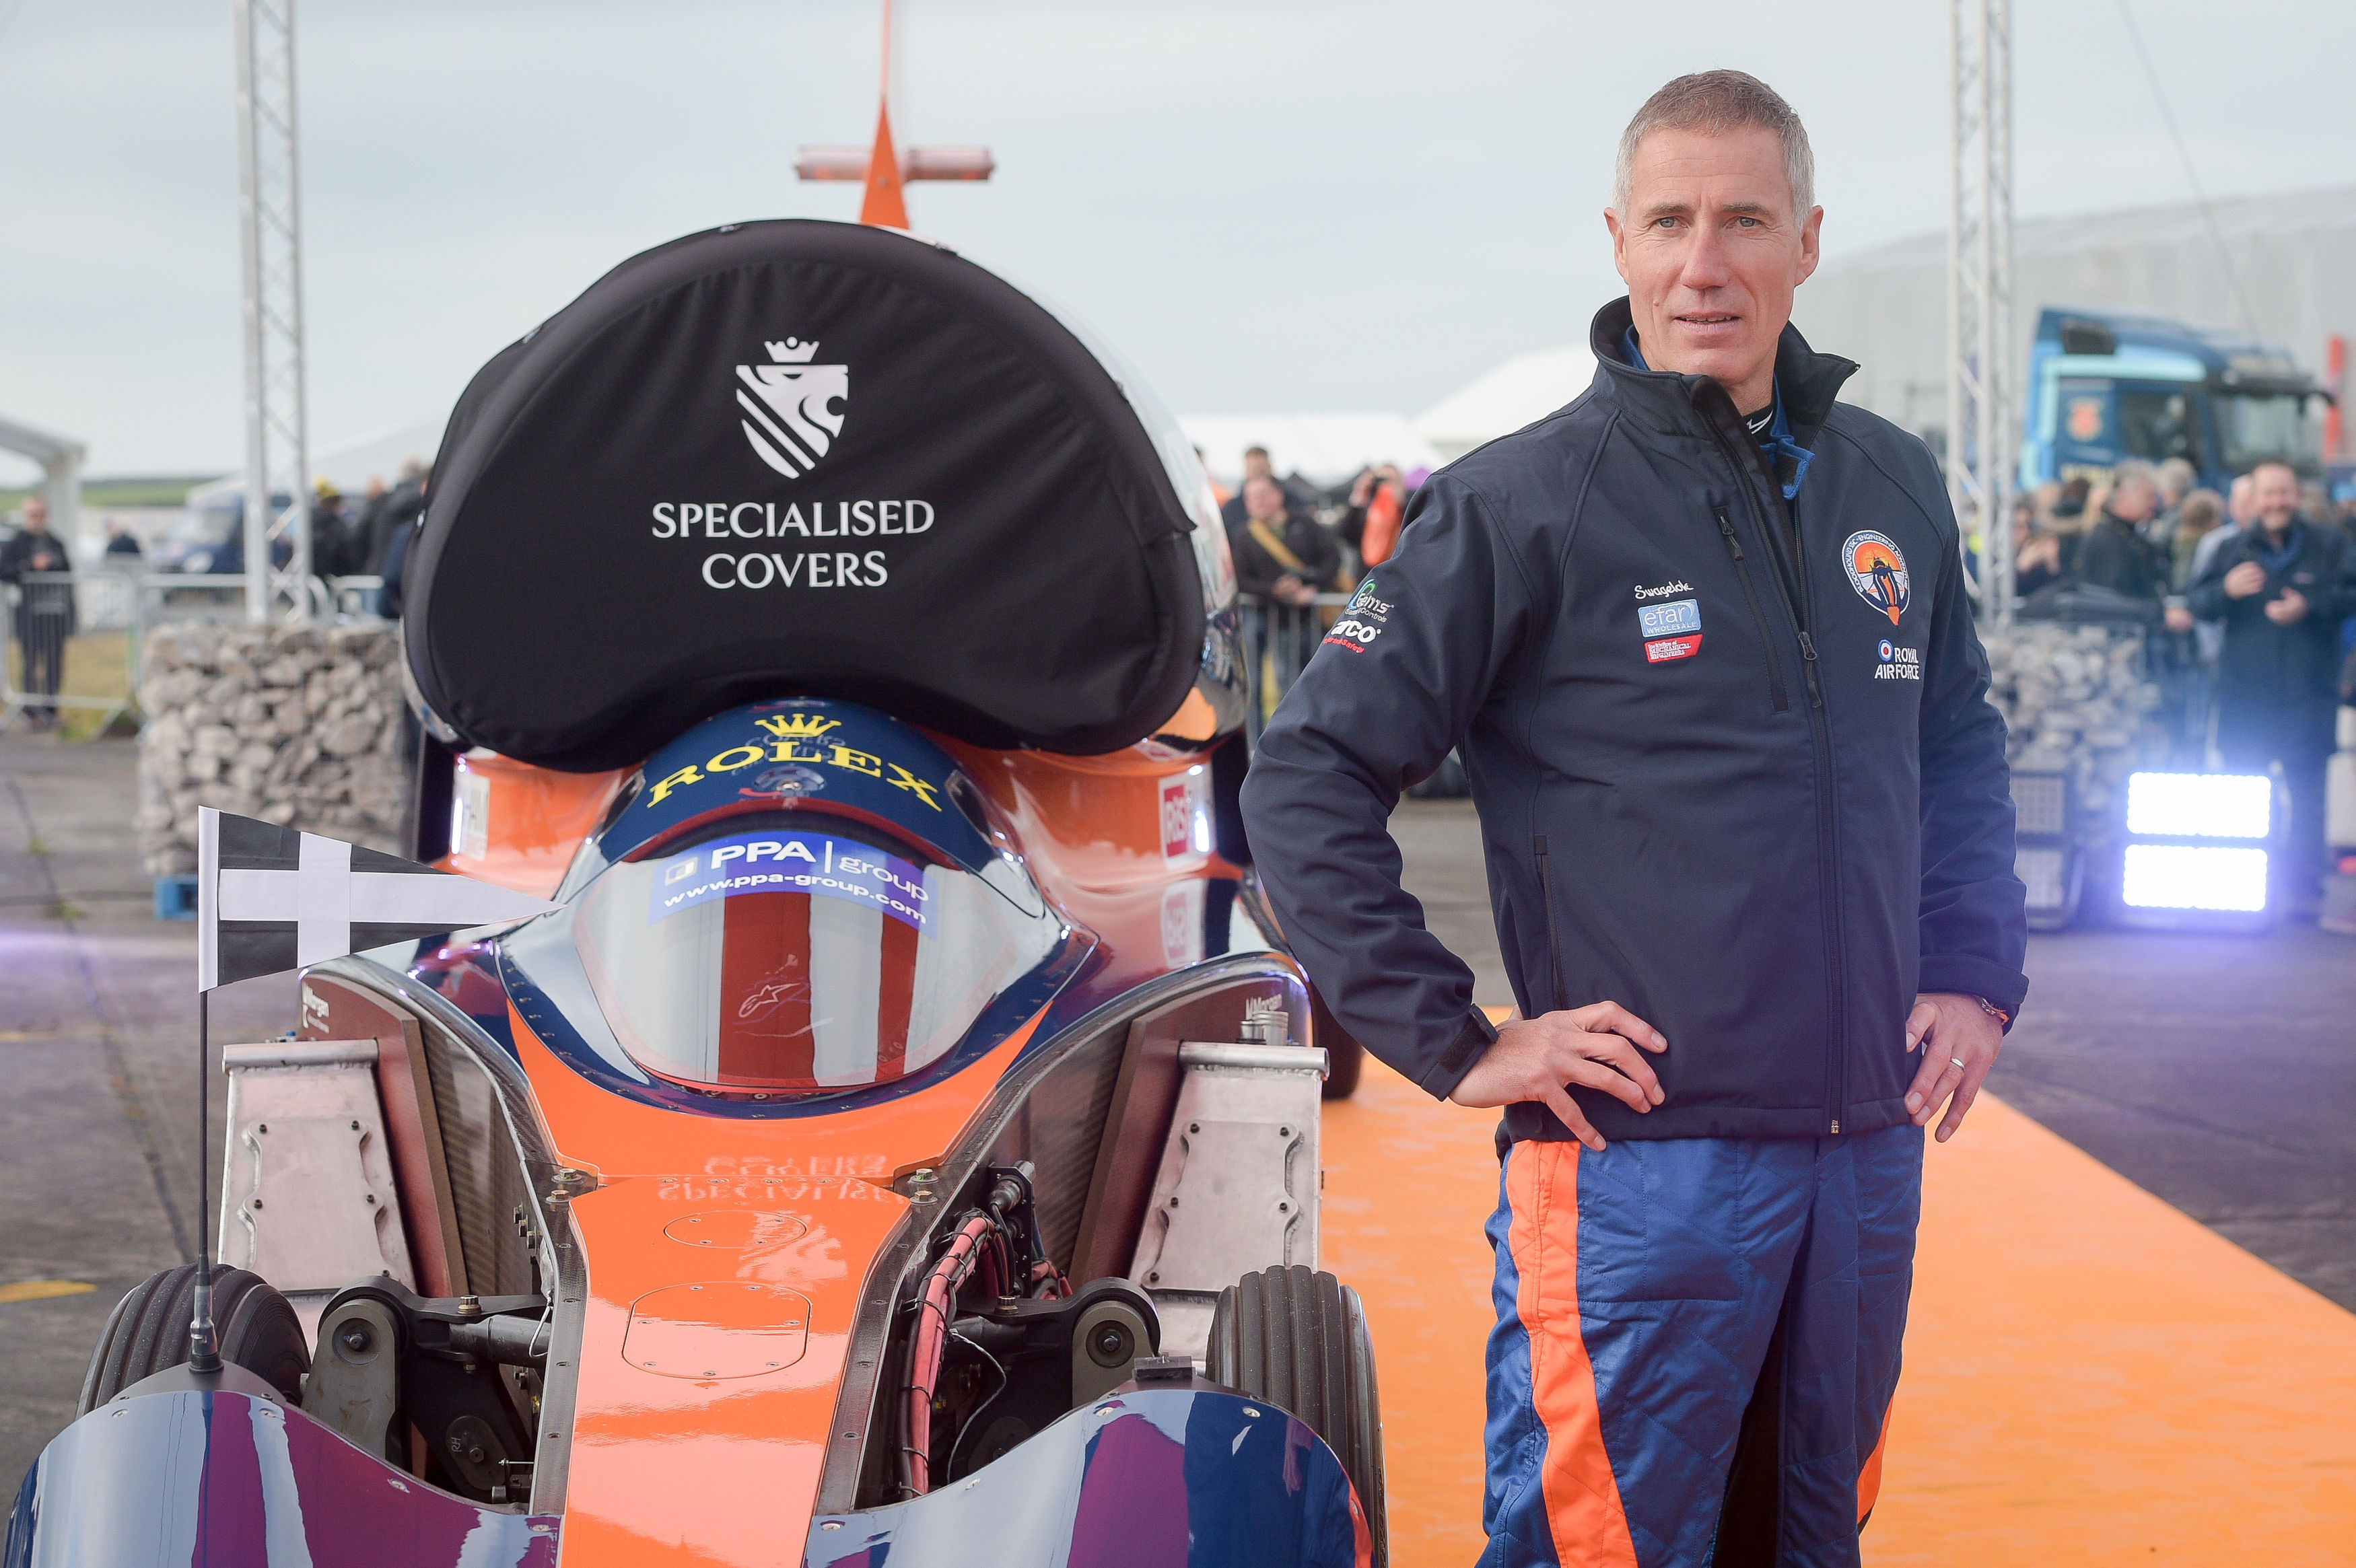 Bloodhound land speed record bid scrapped after firm's collapse